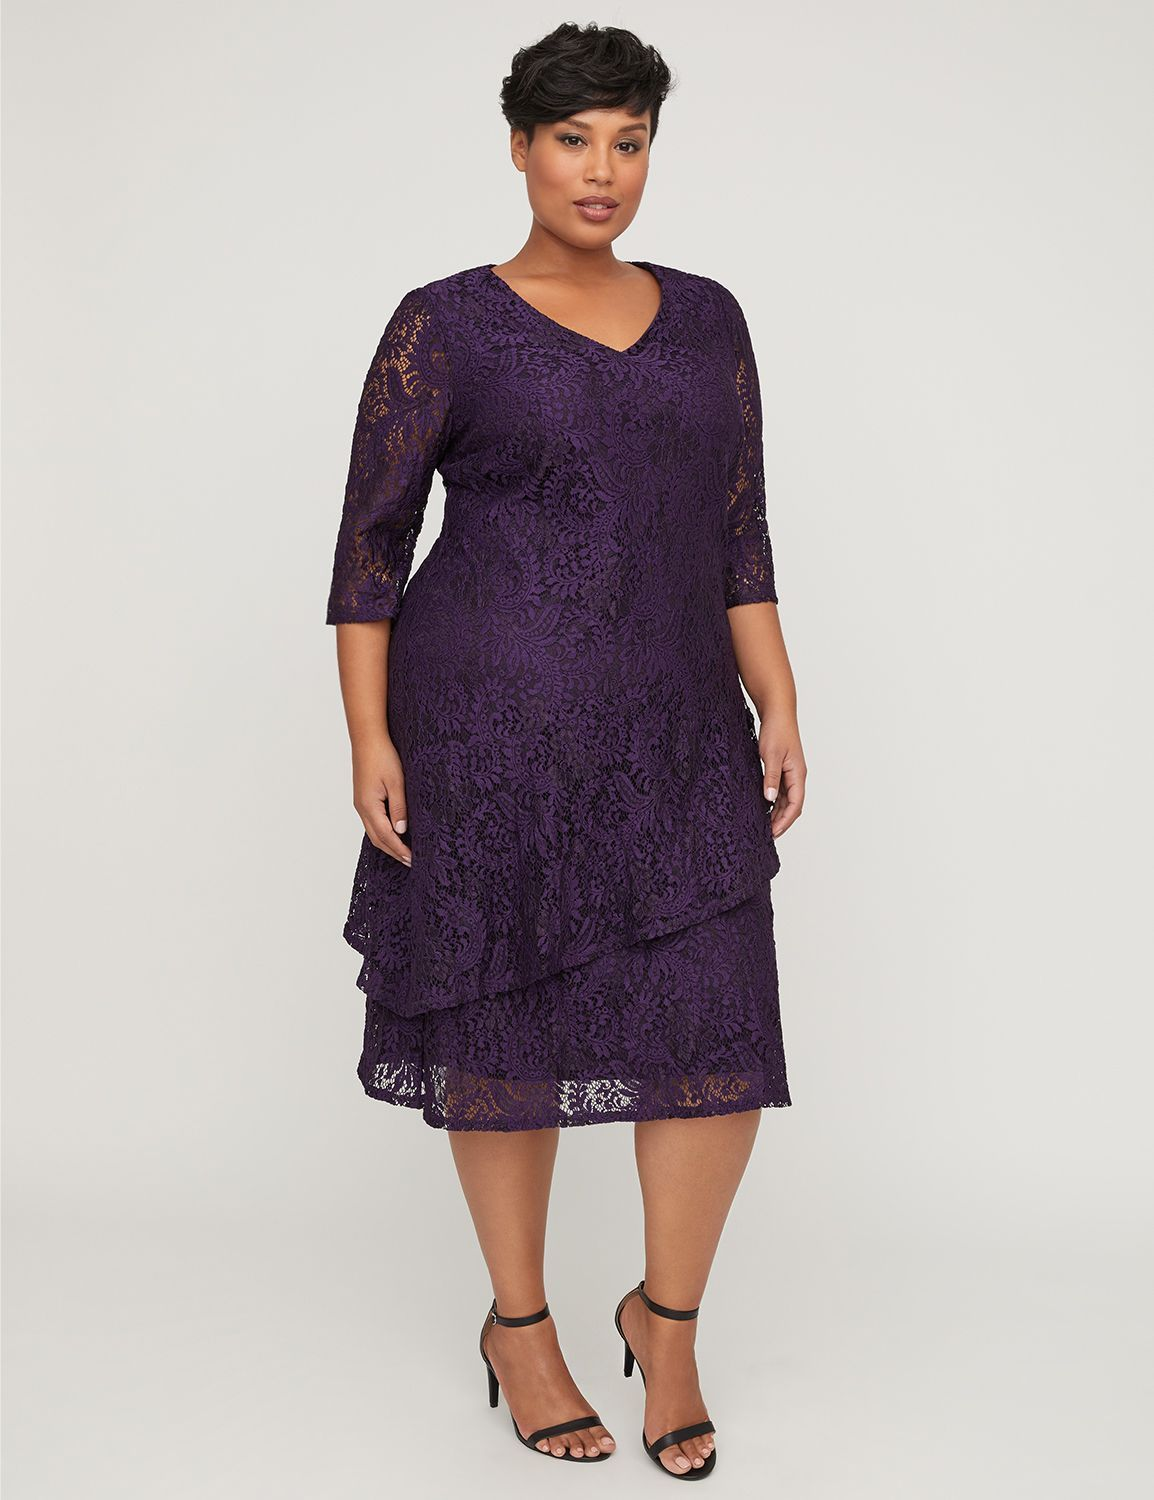 95c7a839d08 Shop for a Amethyst Lace A-Line Dress at Catherines.com. Read reviews and browse  our wide selection to match any budget or occasion.